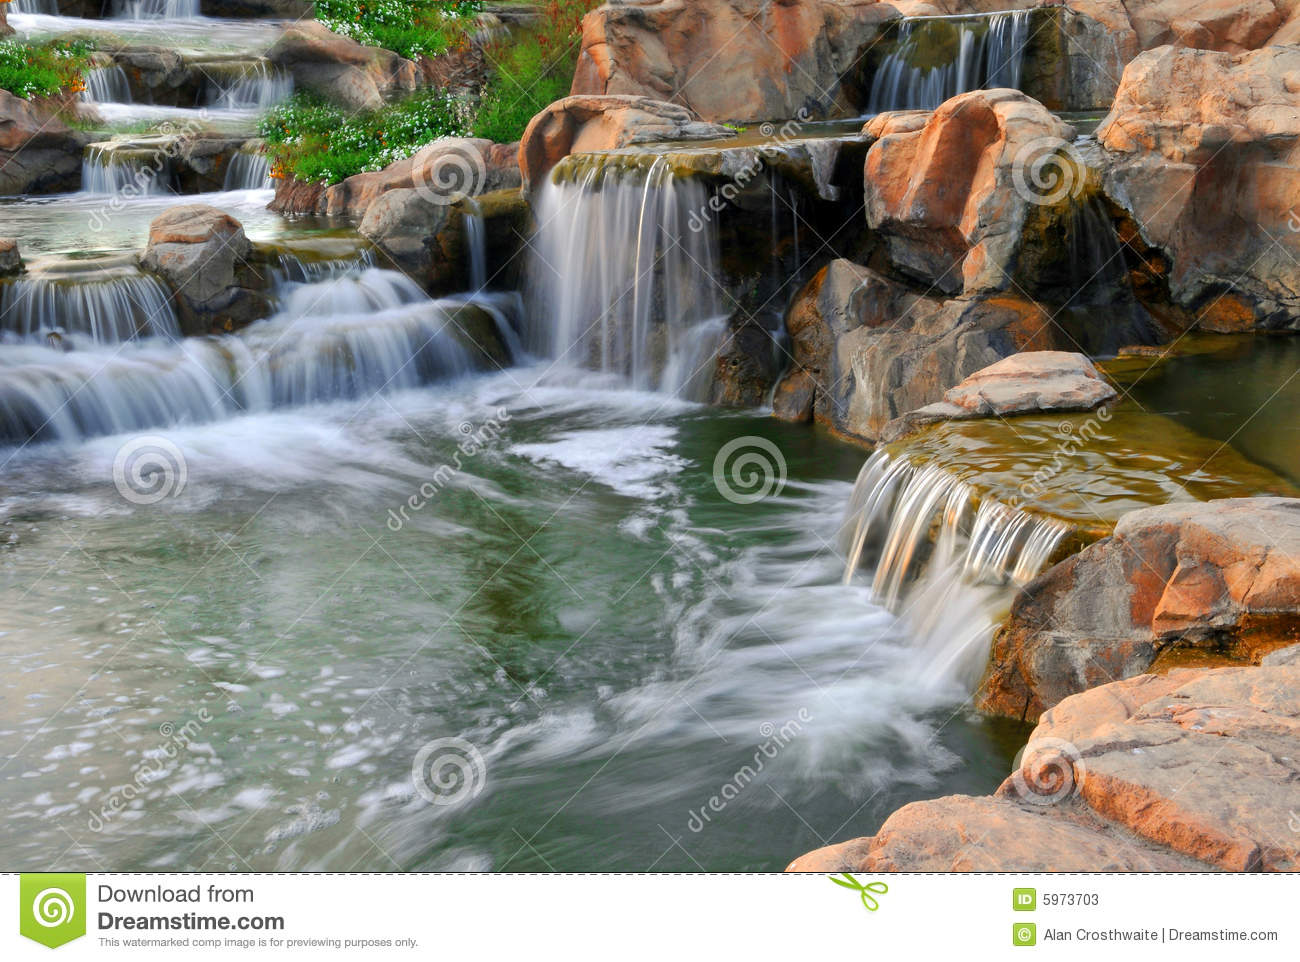 Garden of eden stock photos image 5973703 River flowing from the garden of eden